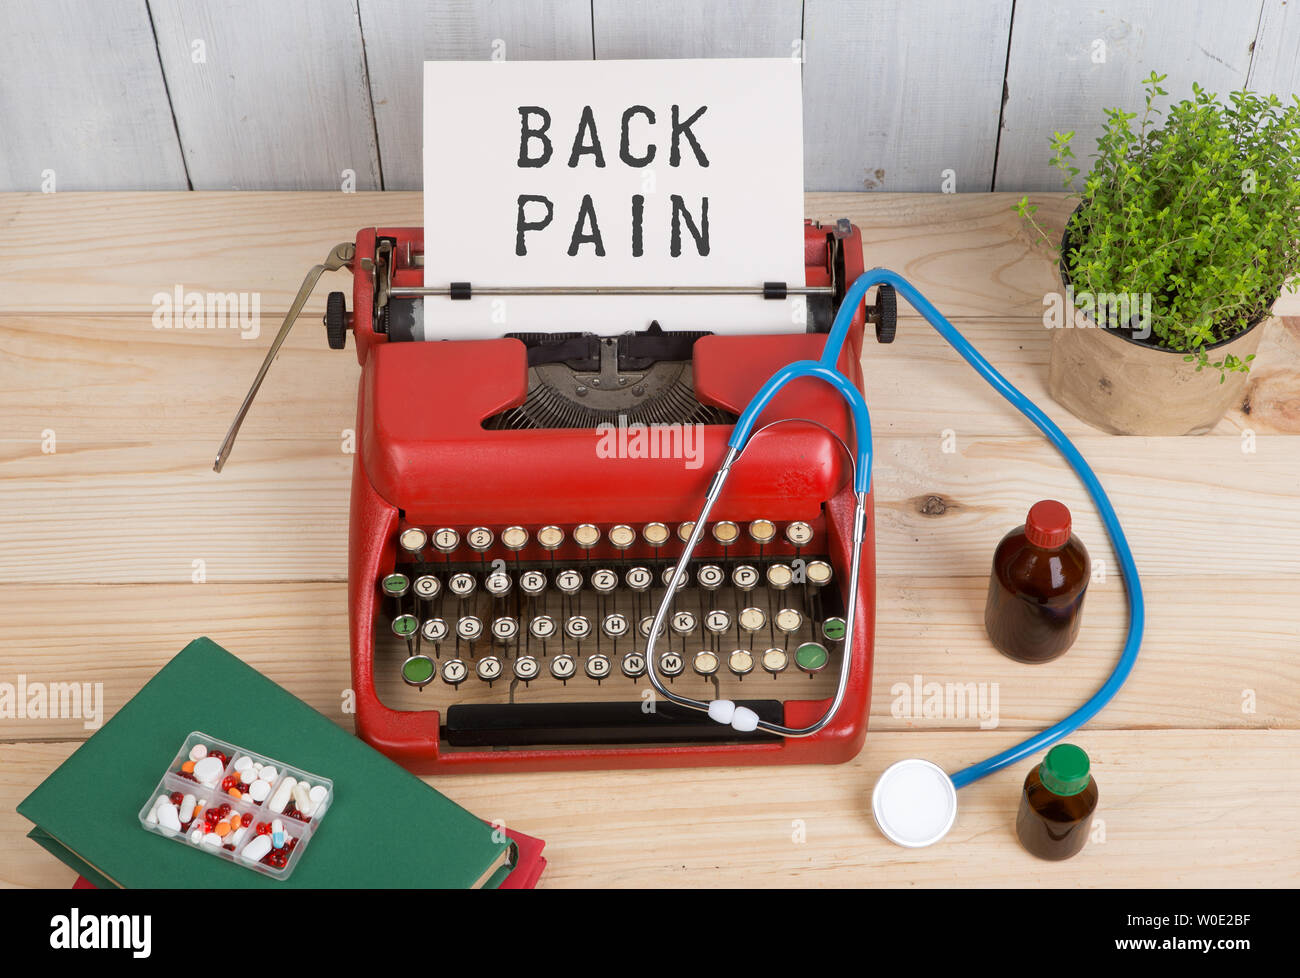 Prescription medicine or medical diagnosis - doctor workplace with stethoscope, pills, typewriter with text Back Pain on wooden table - Stock Image